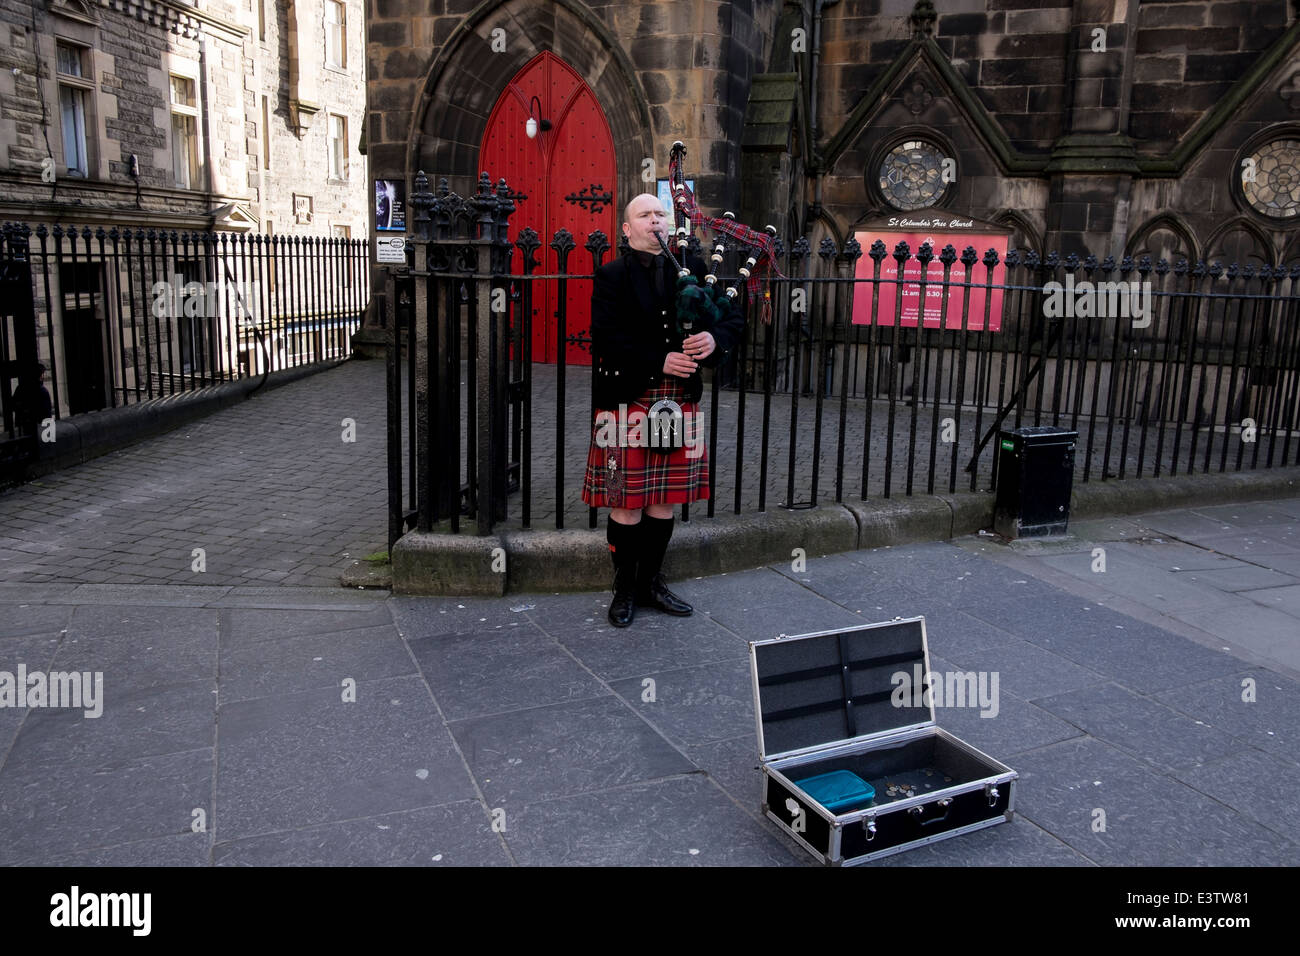 A man in traditional suit plays bagpipe in Edinburgh, Scotland - Stock Image